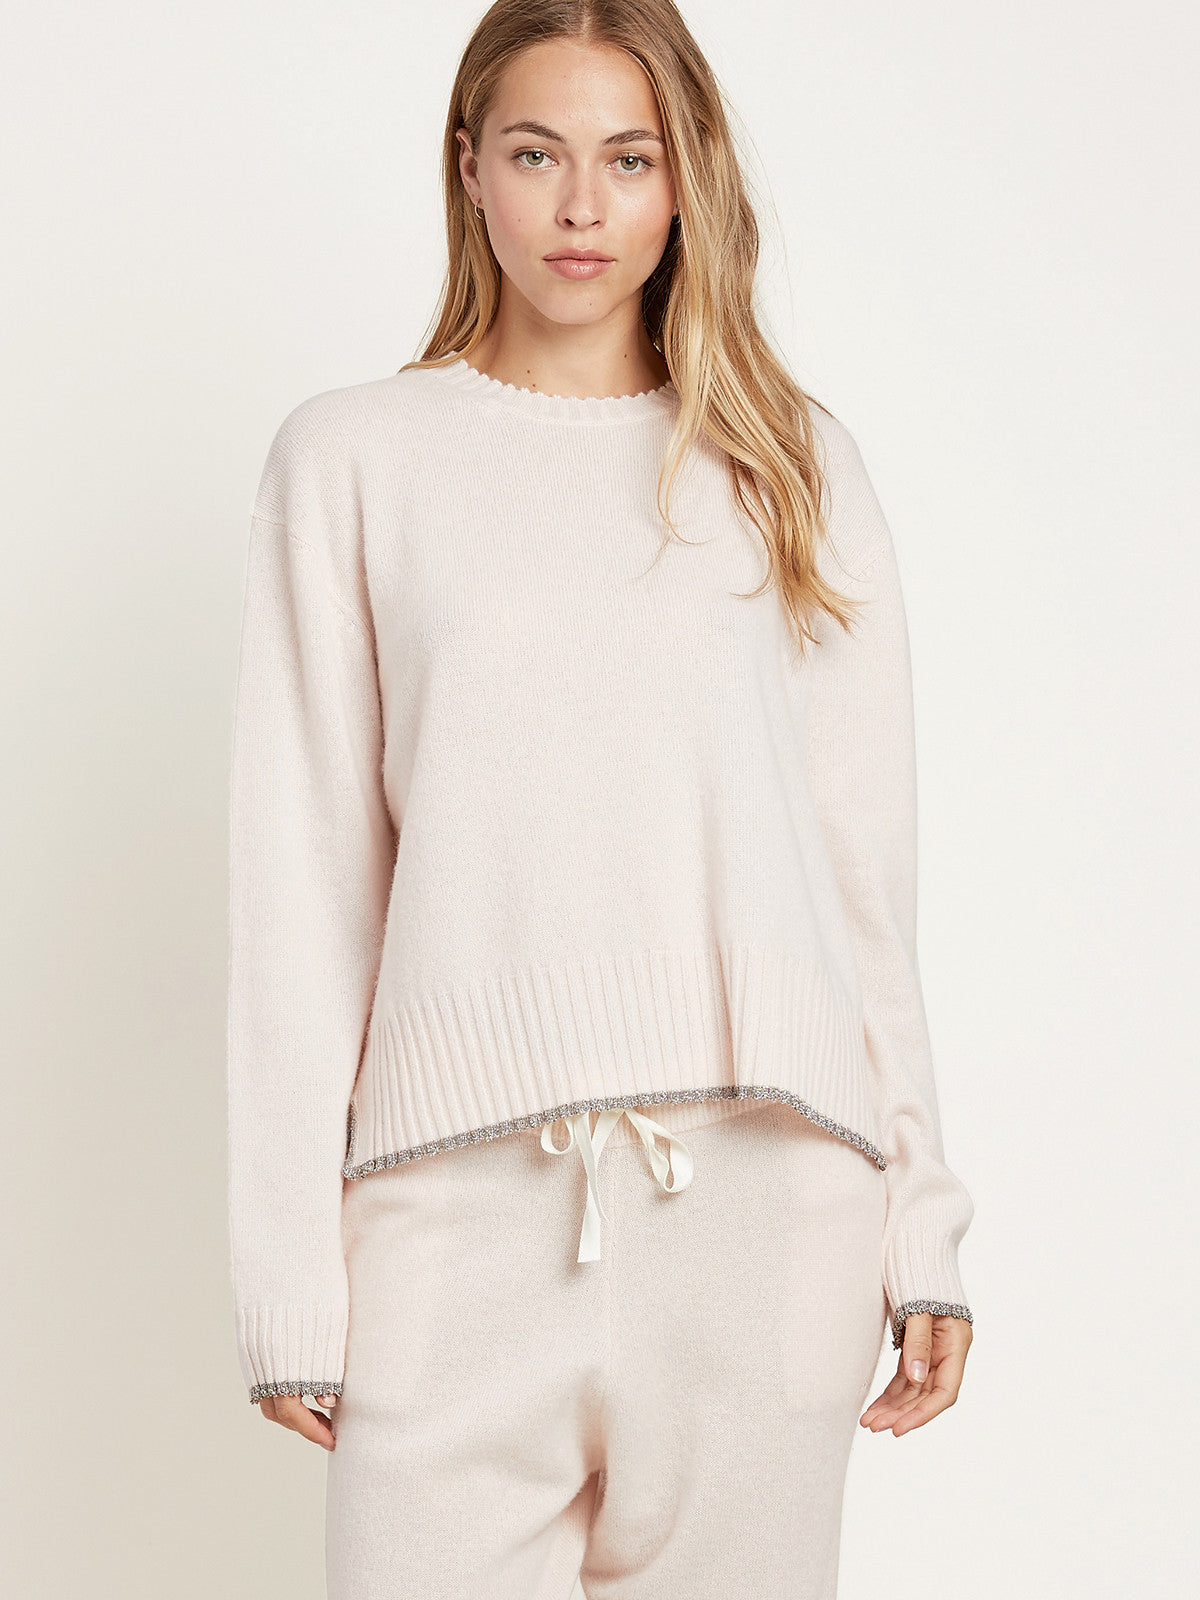 Charlee Sweater in Cashmere Vanilla By Morgan Lane